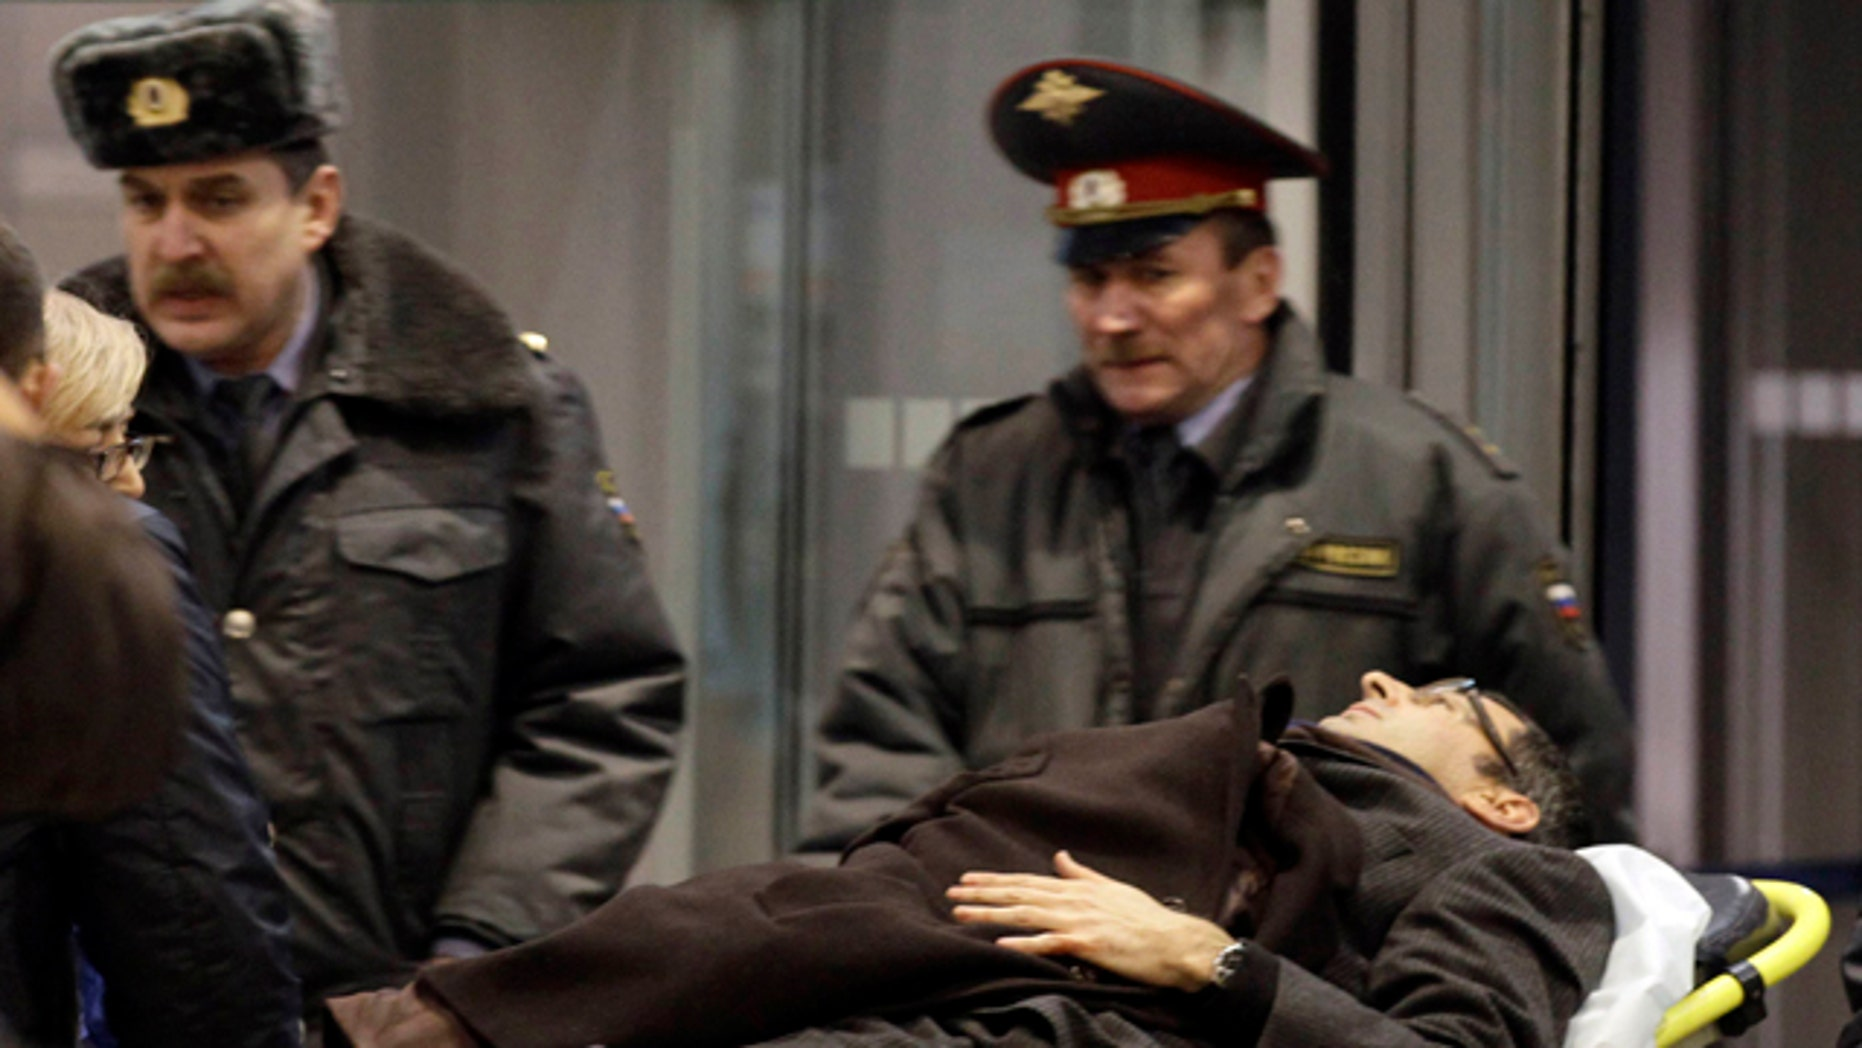 A man wounded in a blast is evacuated from Domodedovo airport in Moscow, Monday, Jan. 24, 2011. An explosion ripped through the international arrivals hall at Moscow's busiest airport on Monday, killing dozens of people and wounding scores, officials said. The Russian president called it a terror attack. (AP Photo/Ivan Sekretarev)